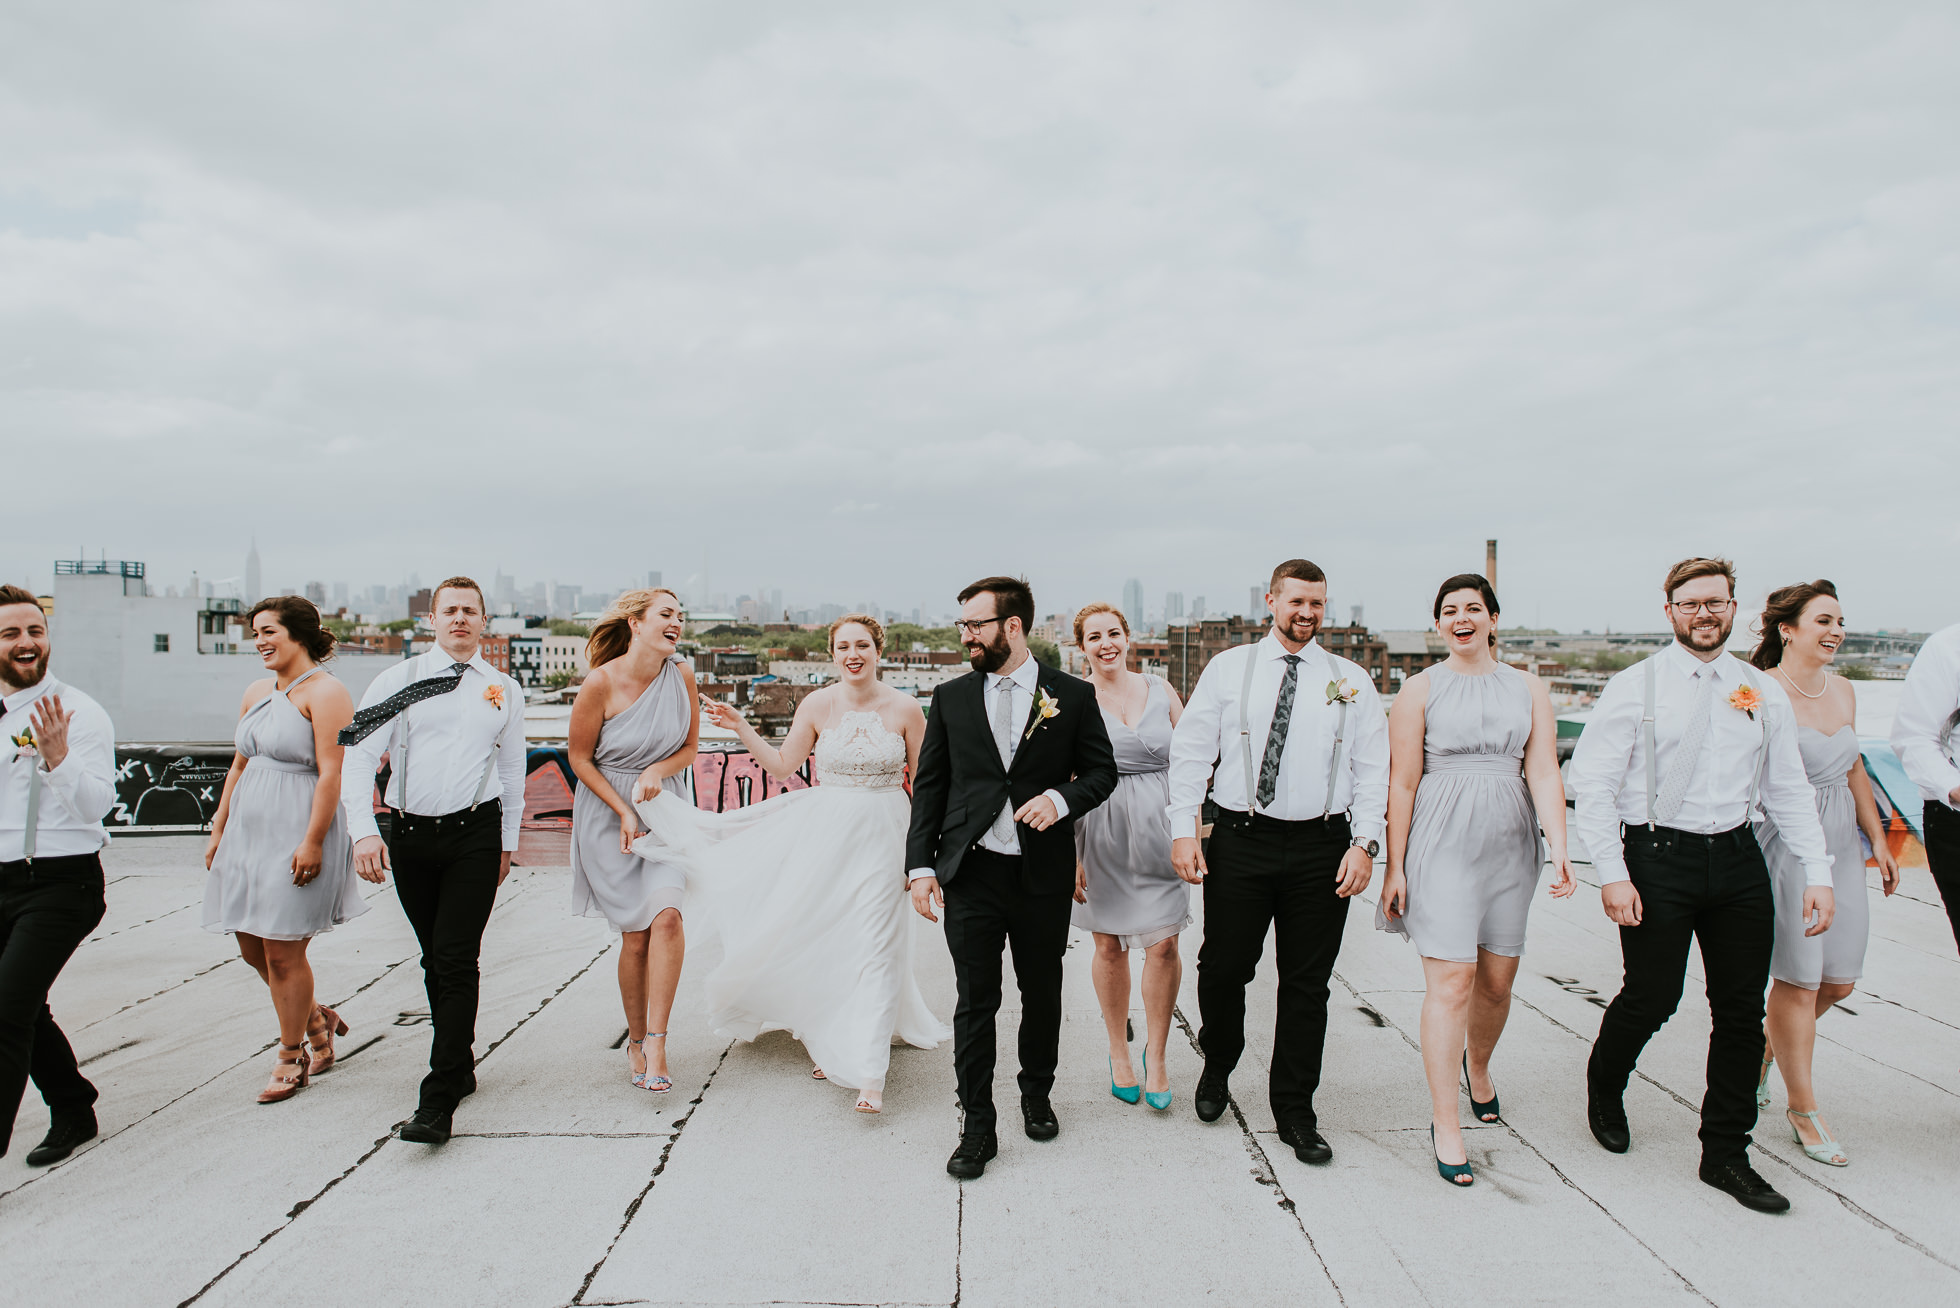 bridal party photos photographed by Traverse The Tides